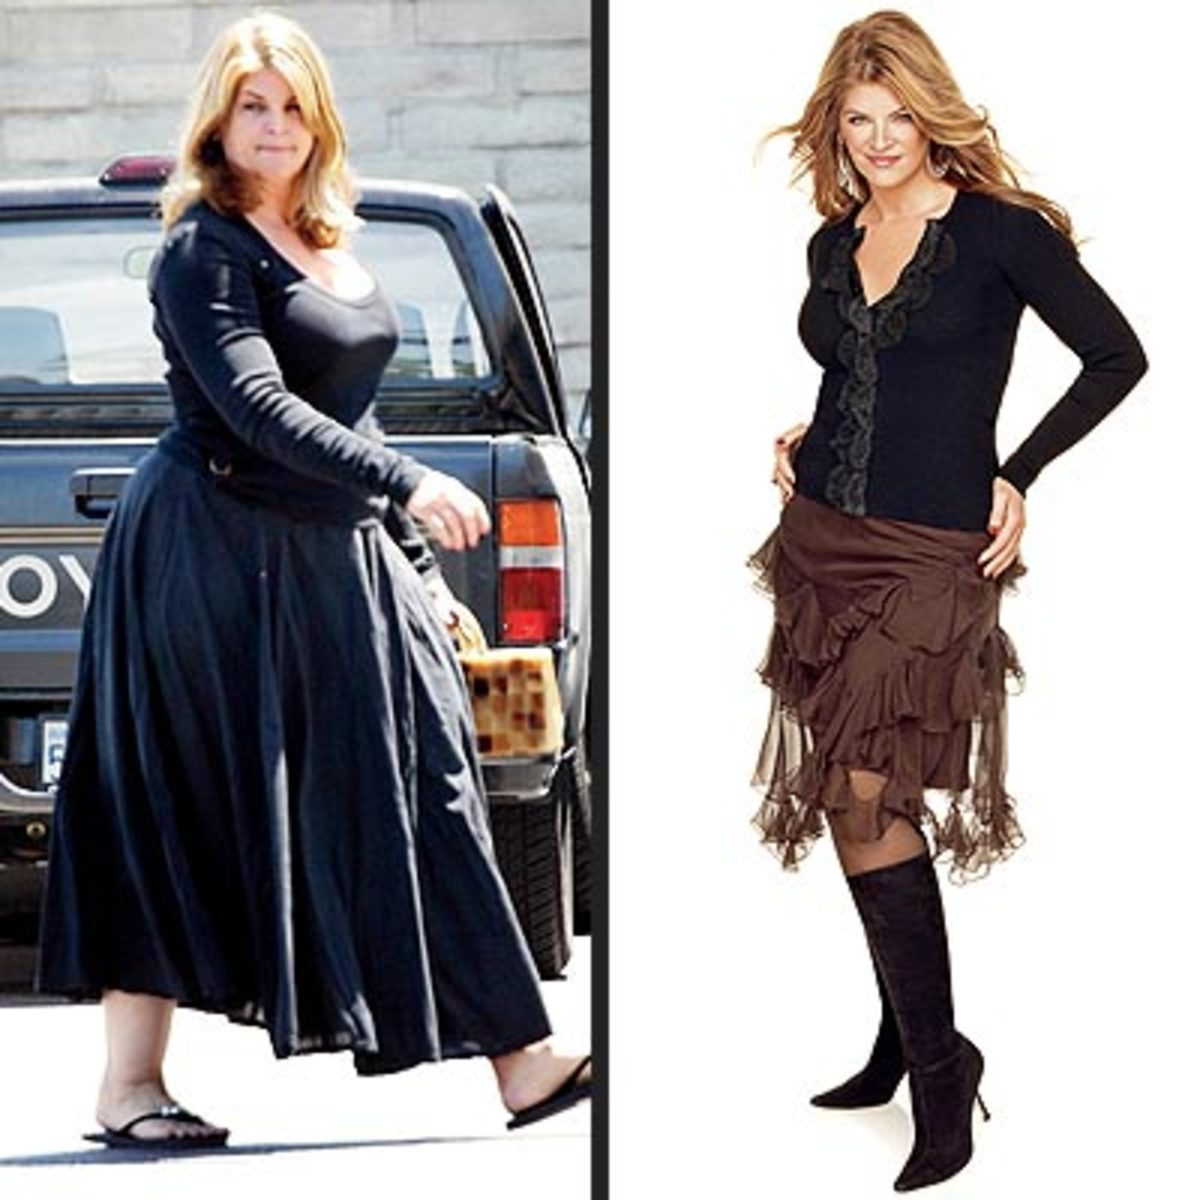 Kirstie Alley before and after pic #2